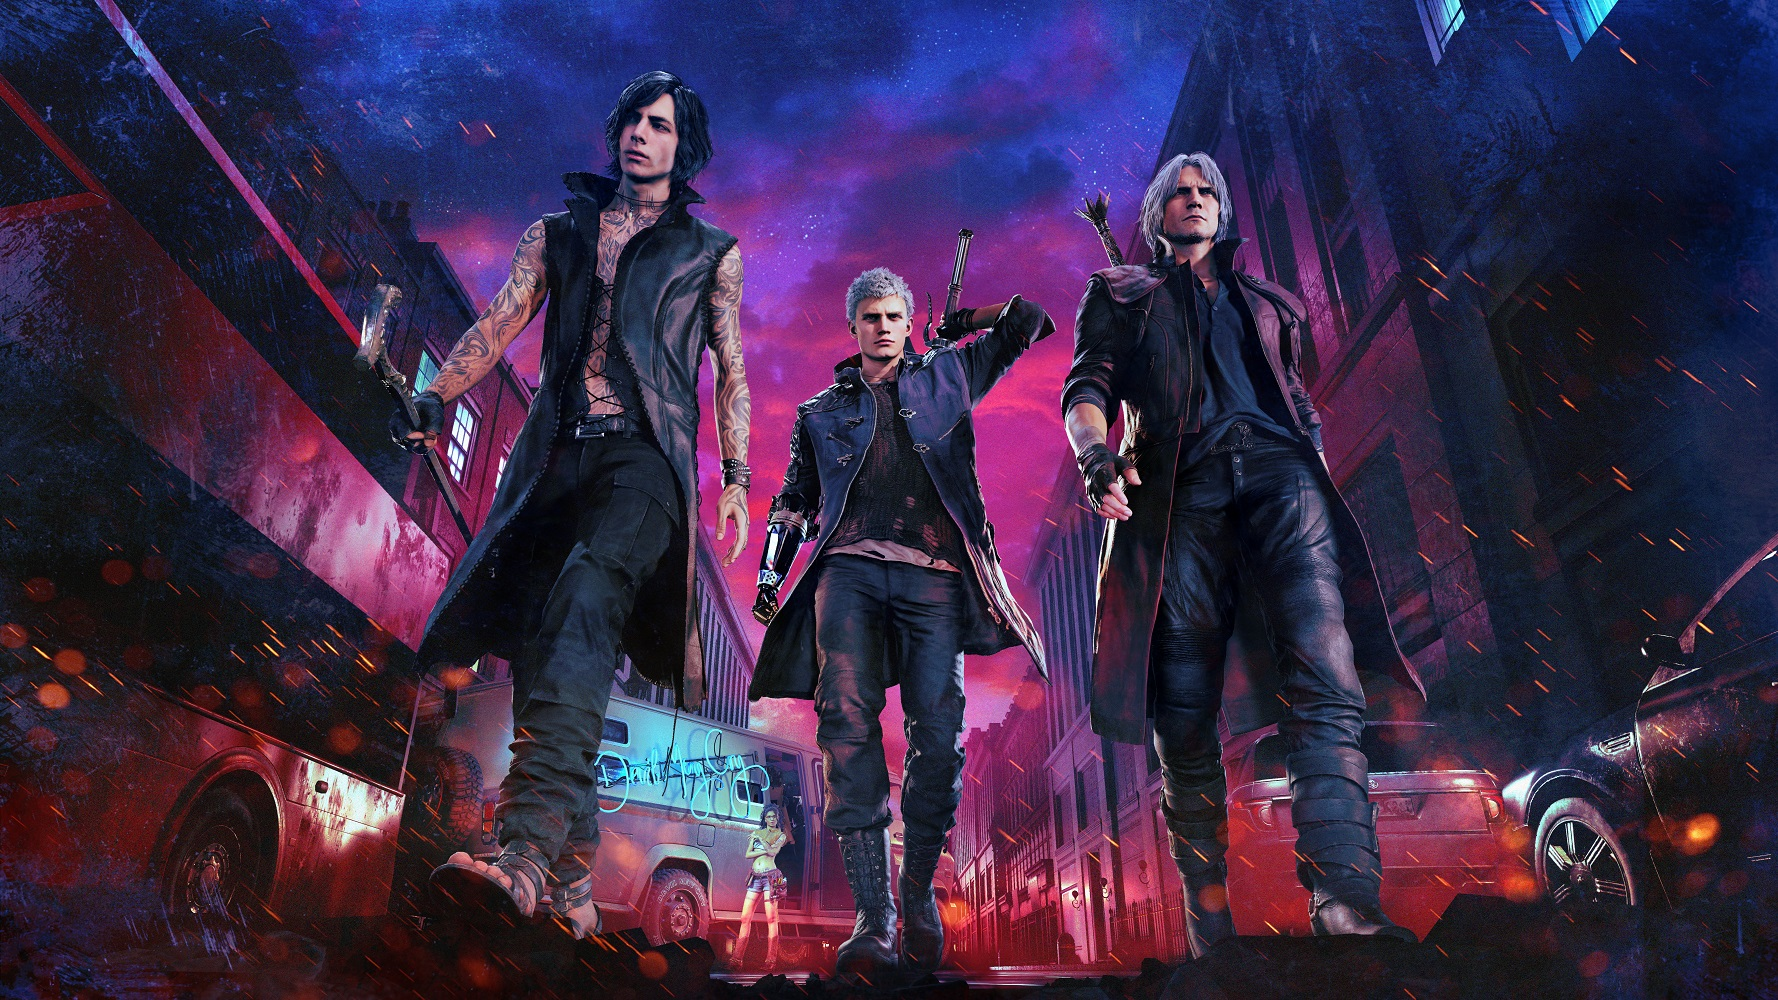 Devil May Cry 5 descarta los DLC de pago